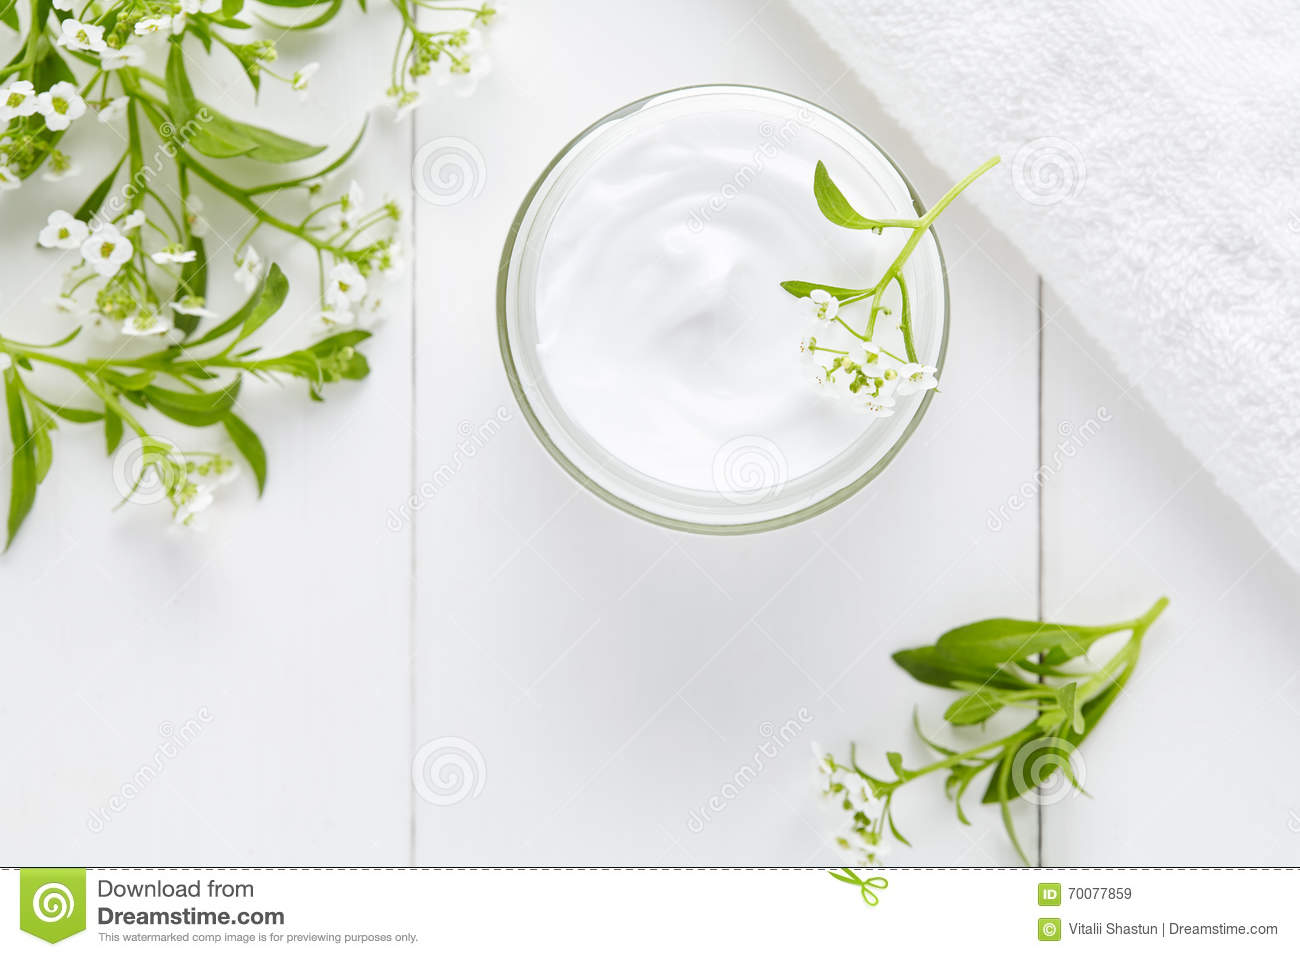 natural-cosmetic-cream-herbal-flowers-skincare-product-glass-jar-white-background-70077859.jpg